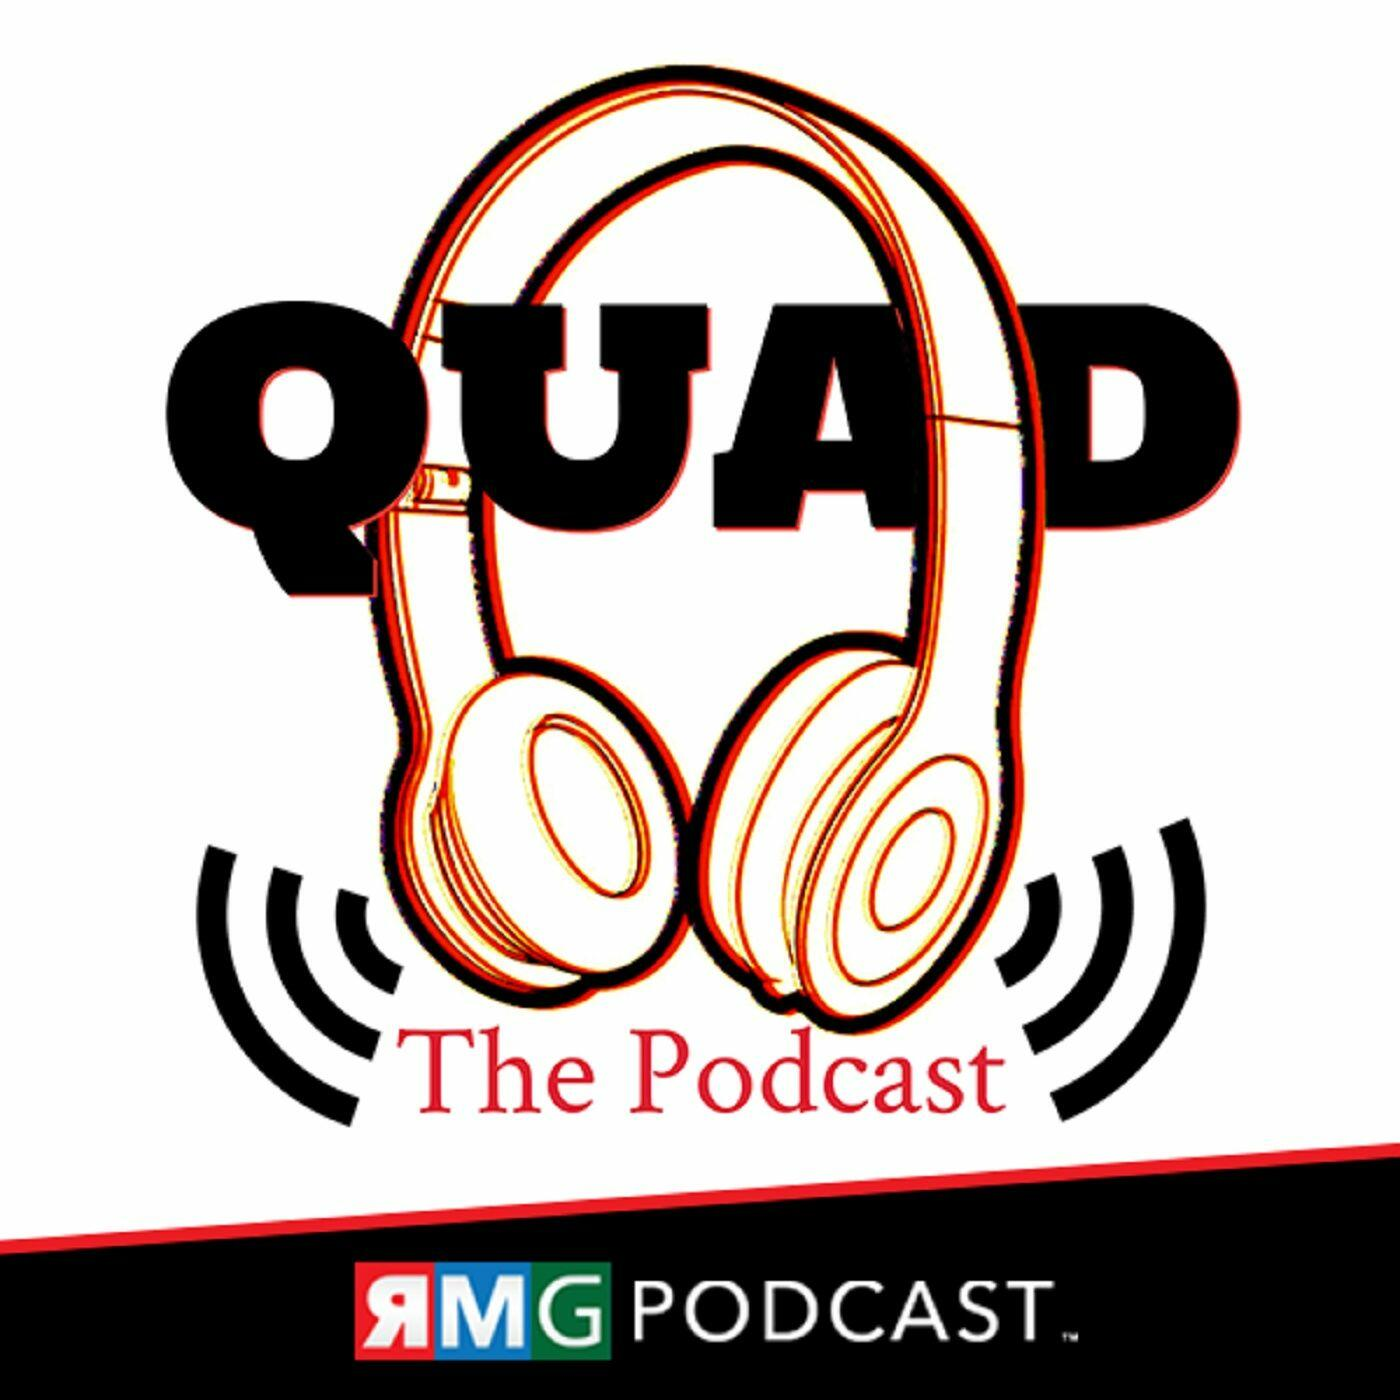 """Listen to the The Quad Episode - Episode 47: """"The Concrete Rose 🌹"""" on iHeartRadio 